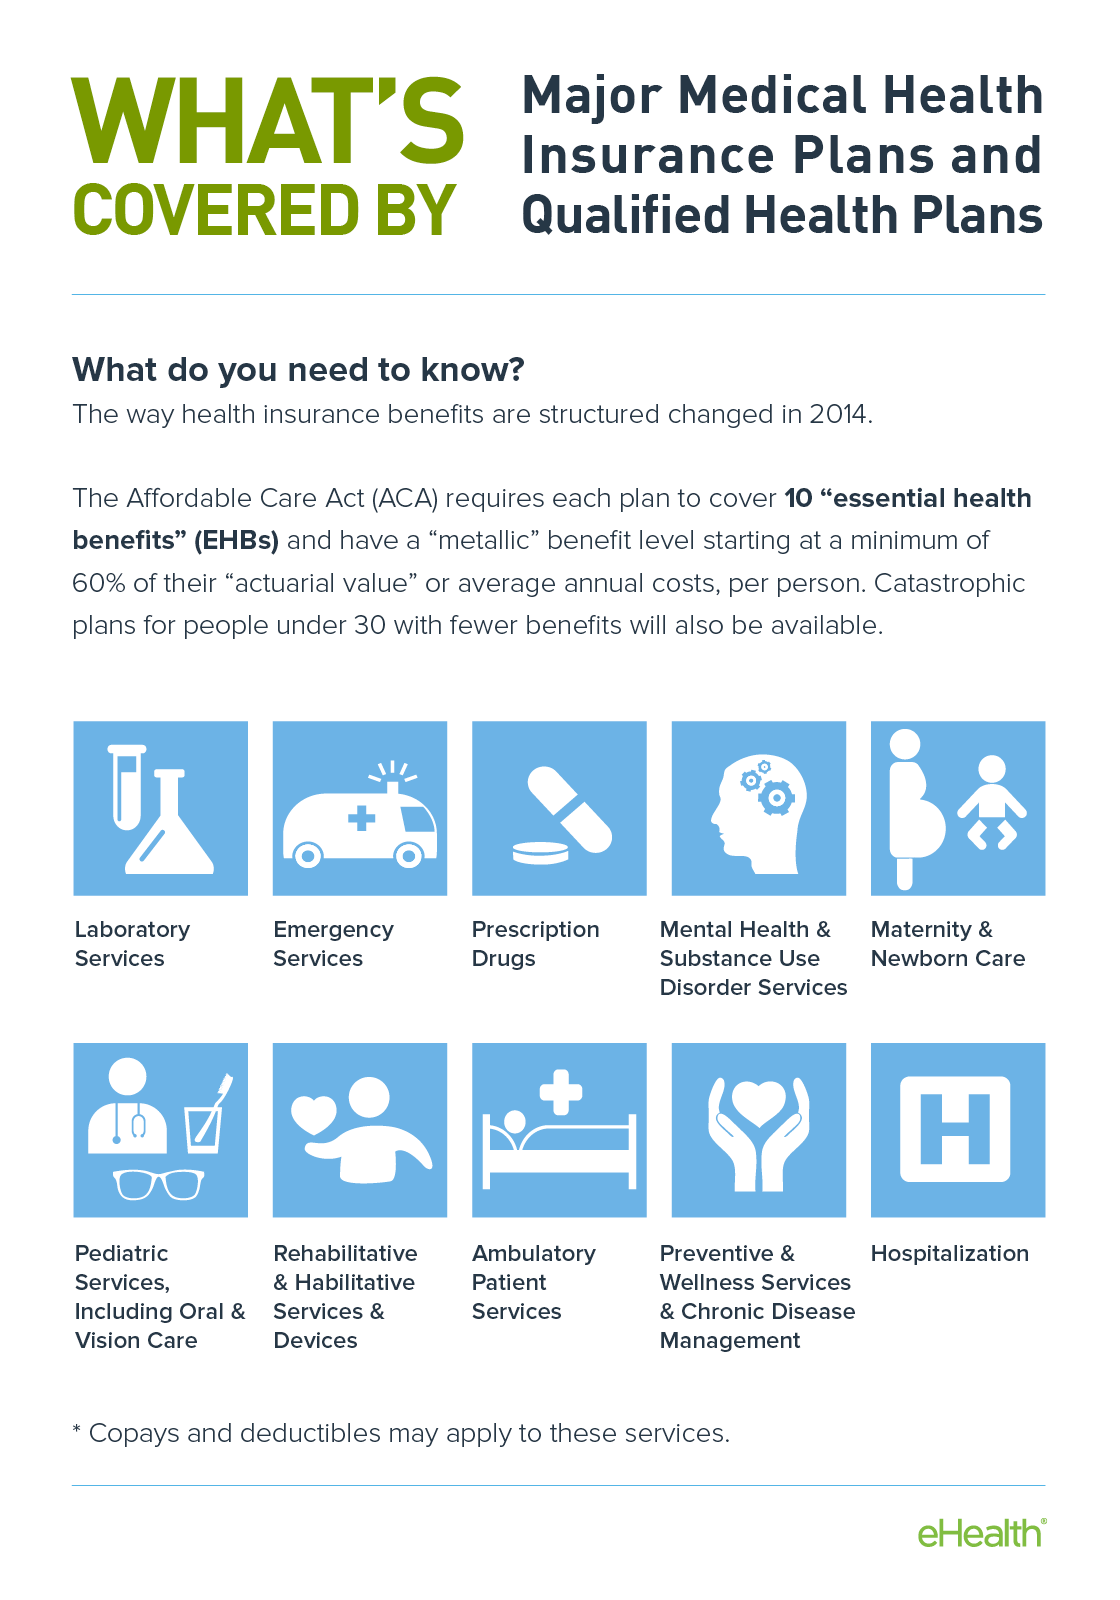 What do health insurance plans cover you ask? The Affordable Care Act  mandated they cover 10 Essential Health Benefits.